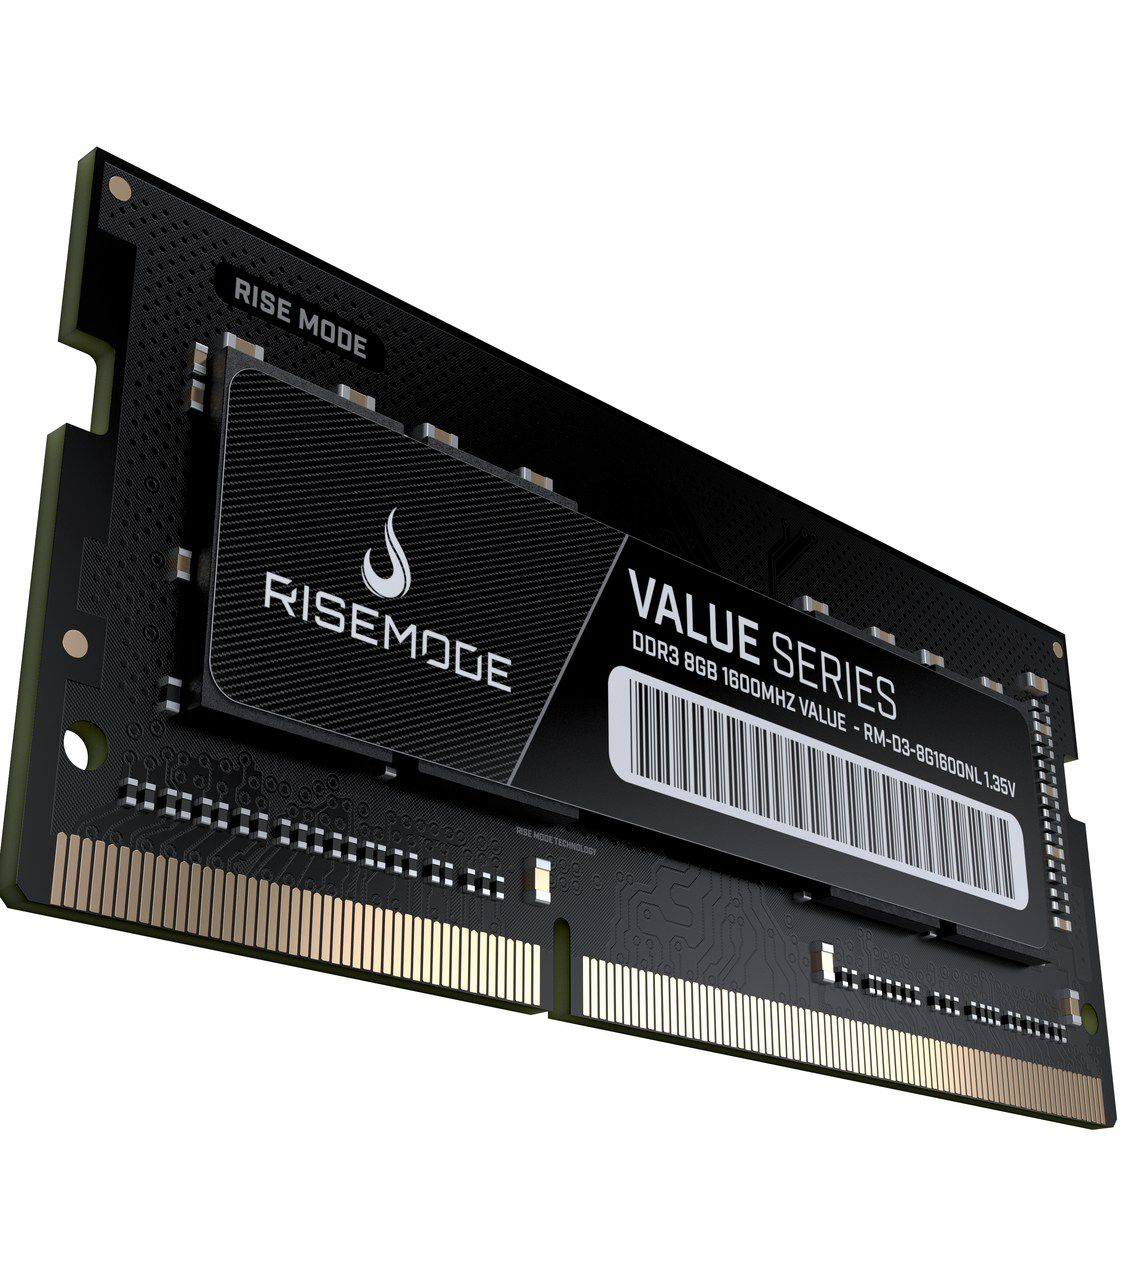 Memoria Ram DDR3L 8GB 1600MHZ Value Notebook - RM-D3-8G1600NL  - Loja Rise Mode